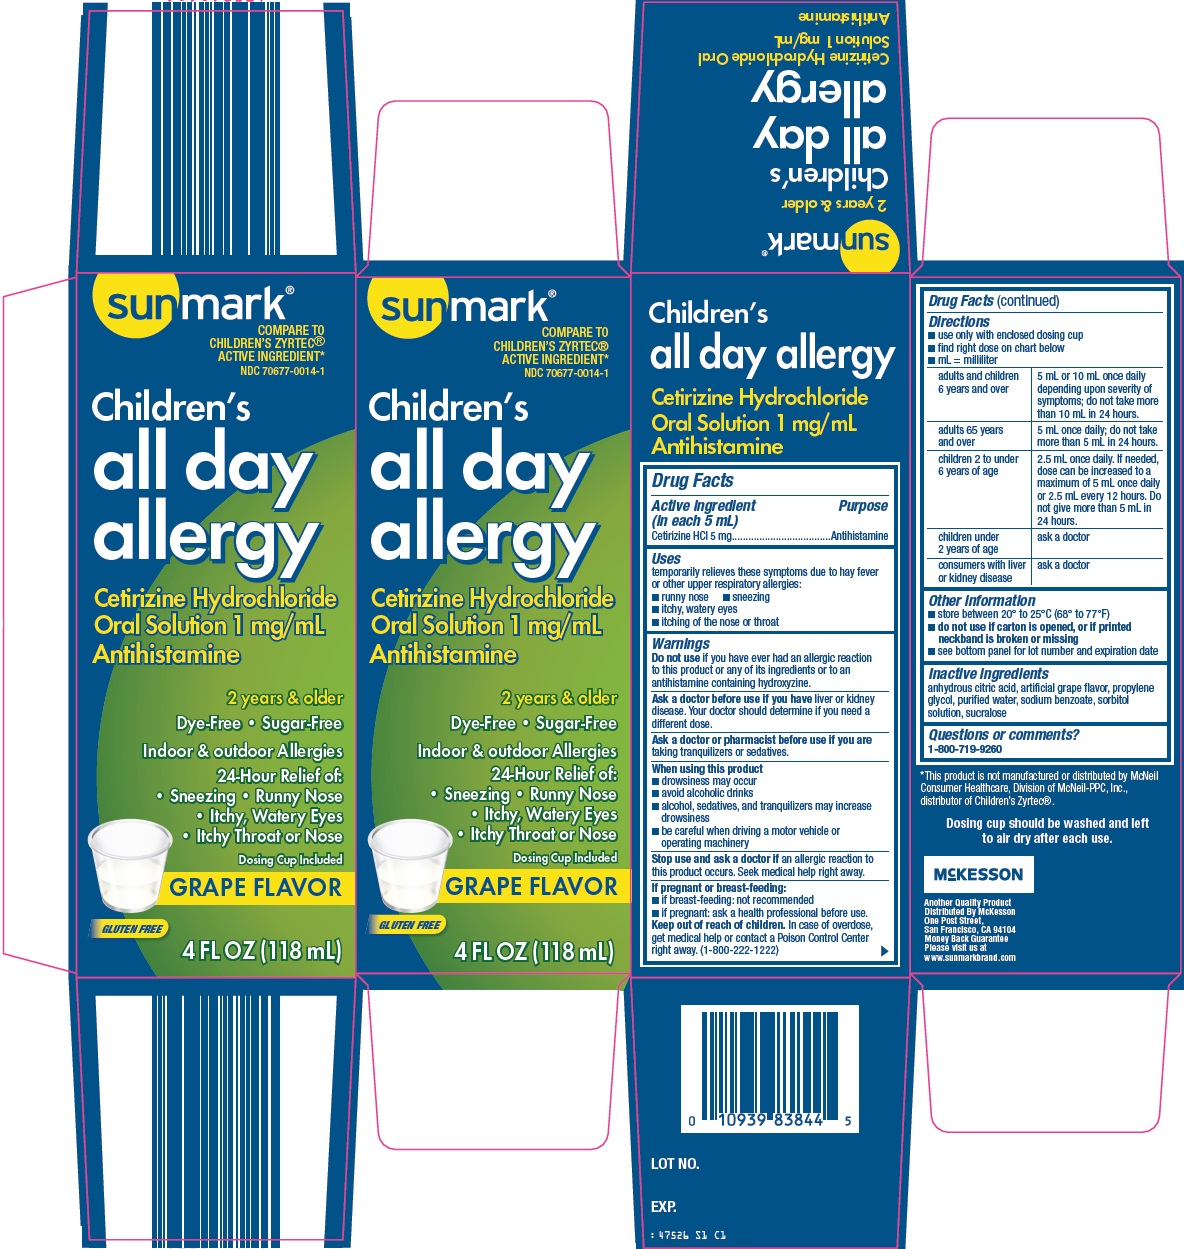 SunMark Children's All Day Allergy image